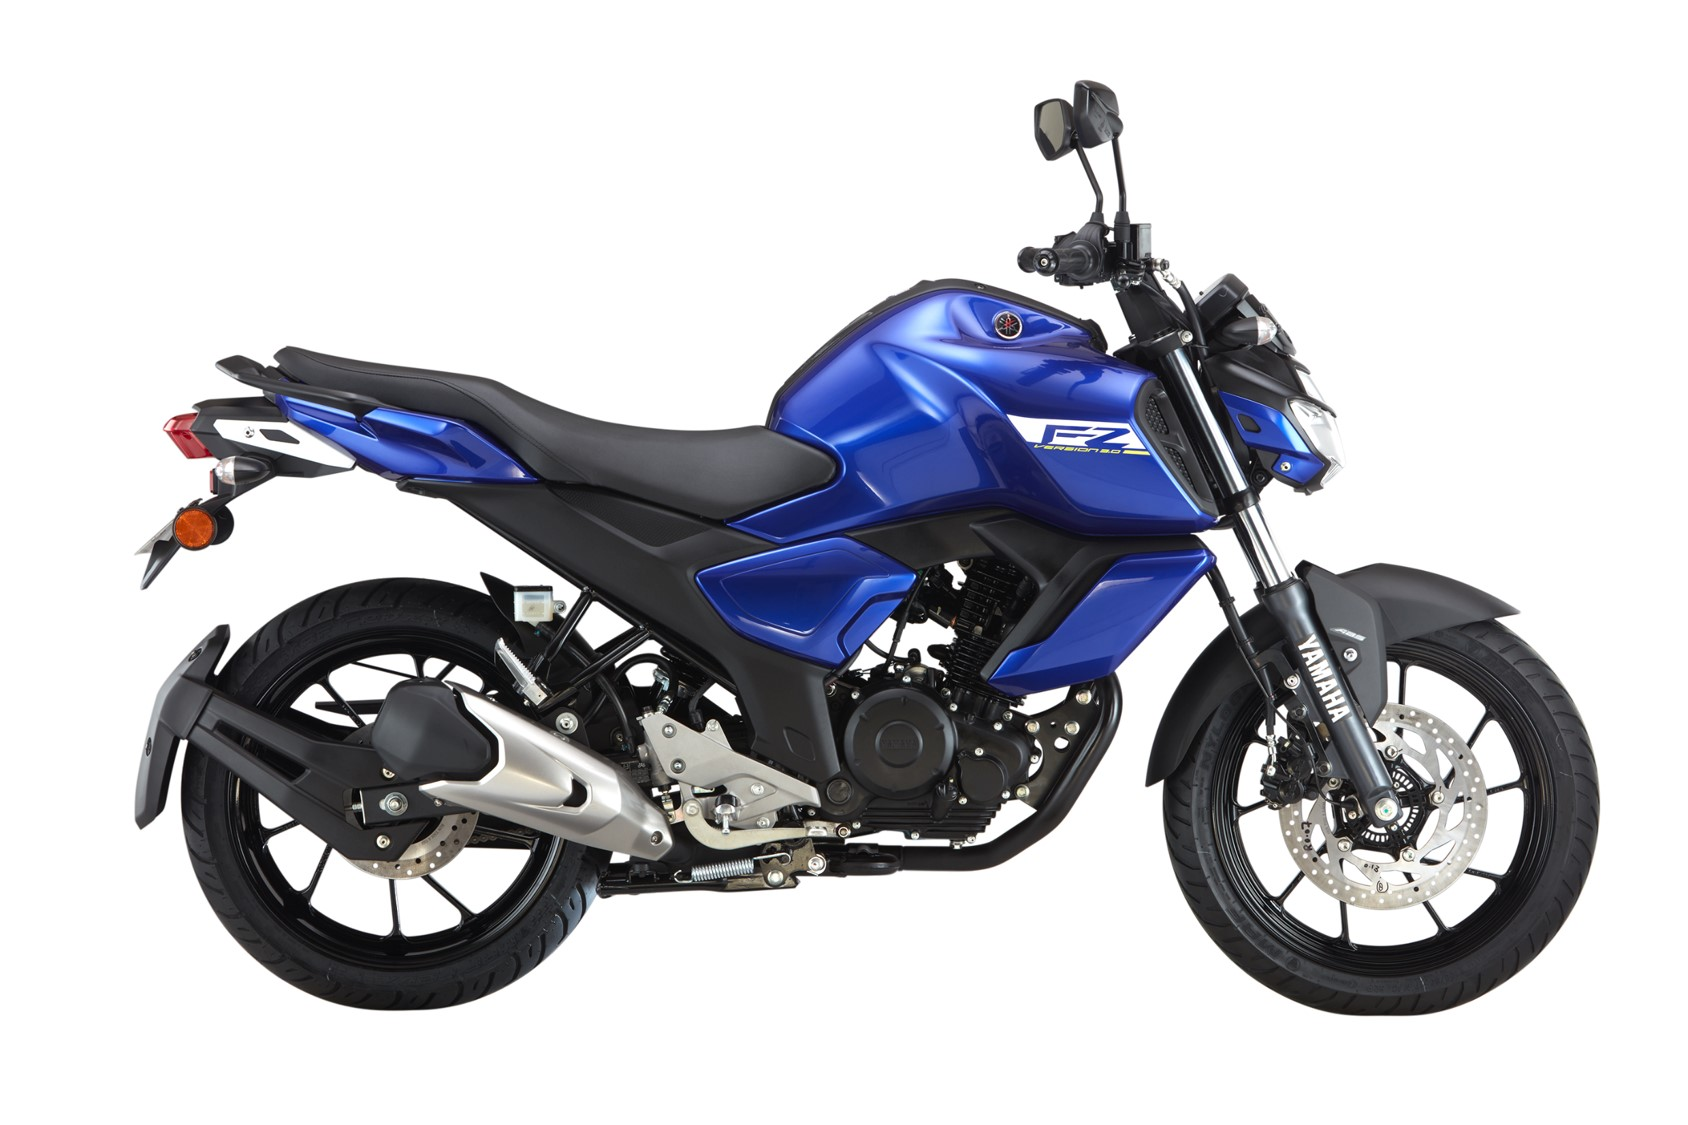 Yamaha FZ FI V3.0 Blue Color - Racing Blue